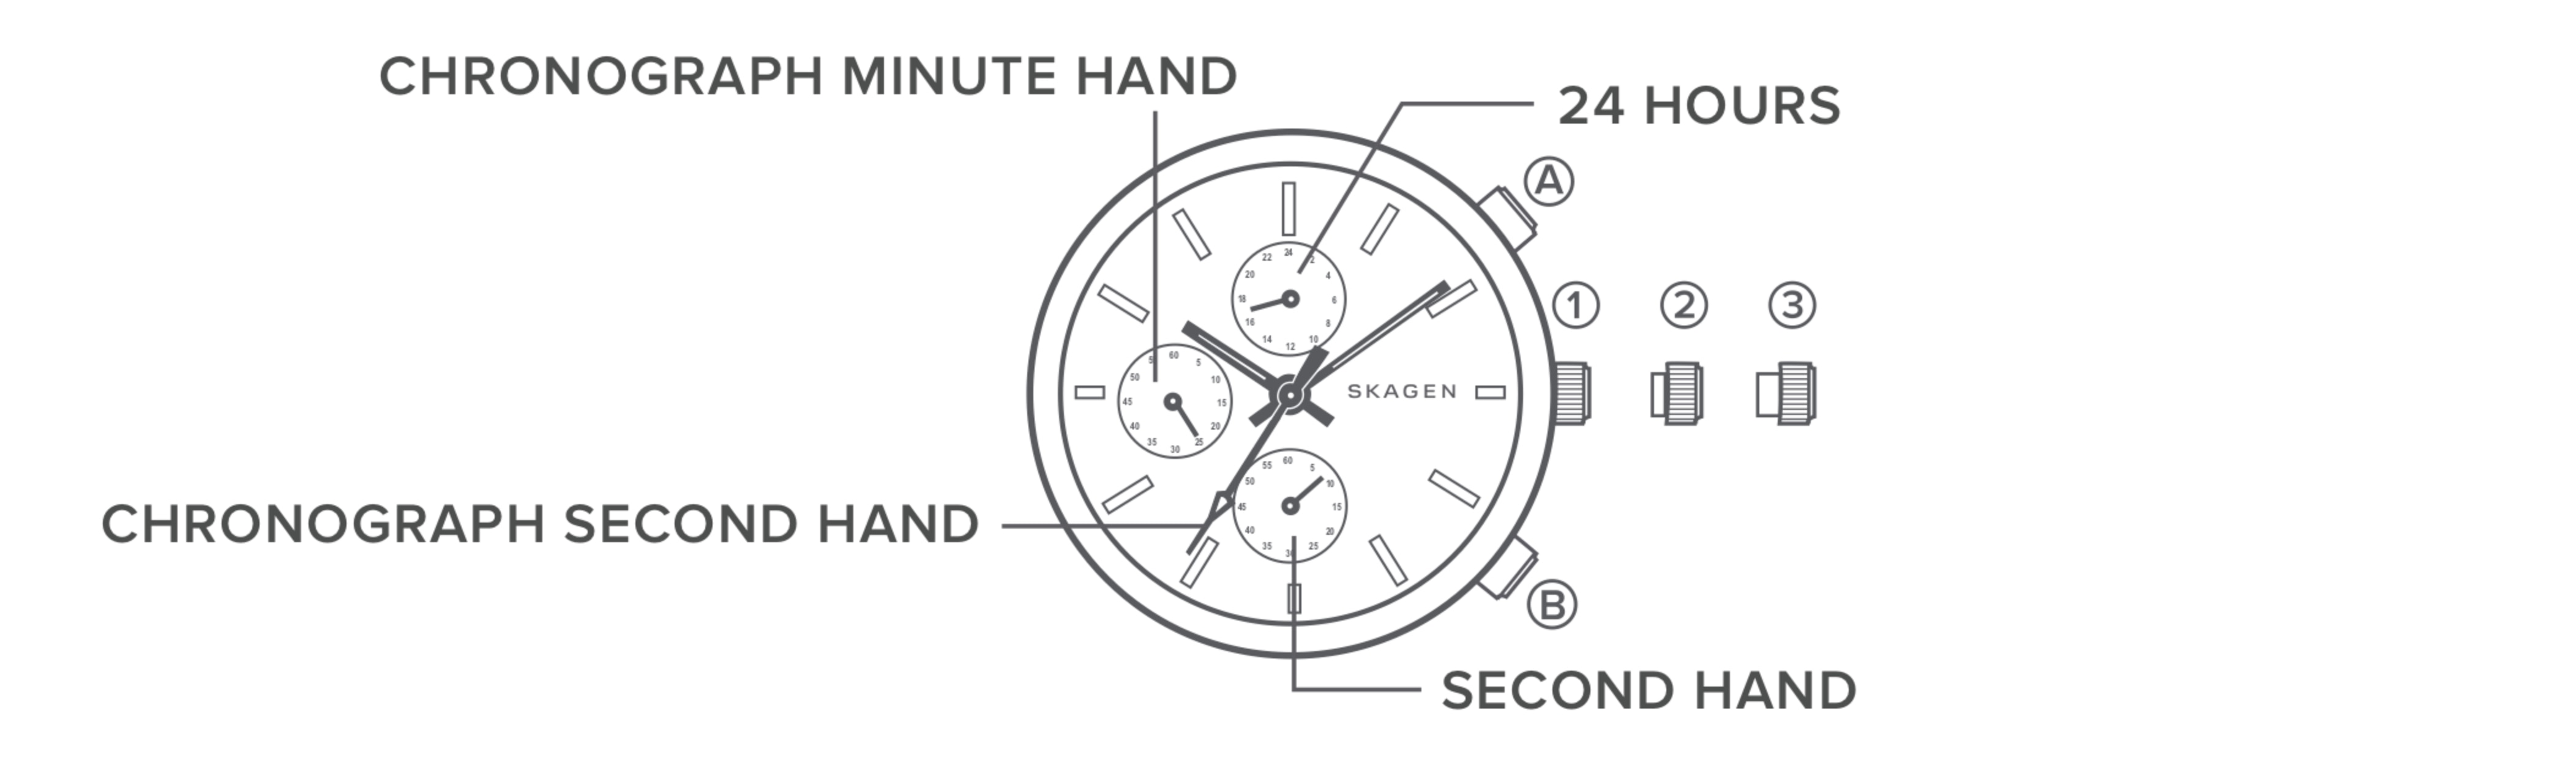 line art of a chronograph watch dial, identifying the parts of the watch.